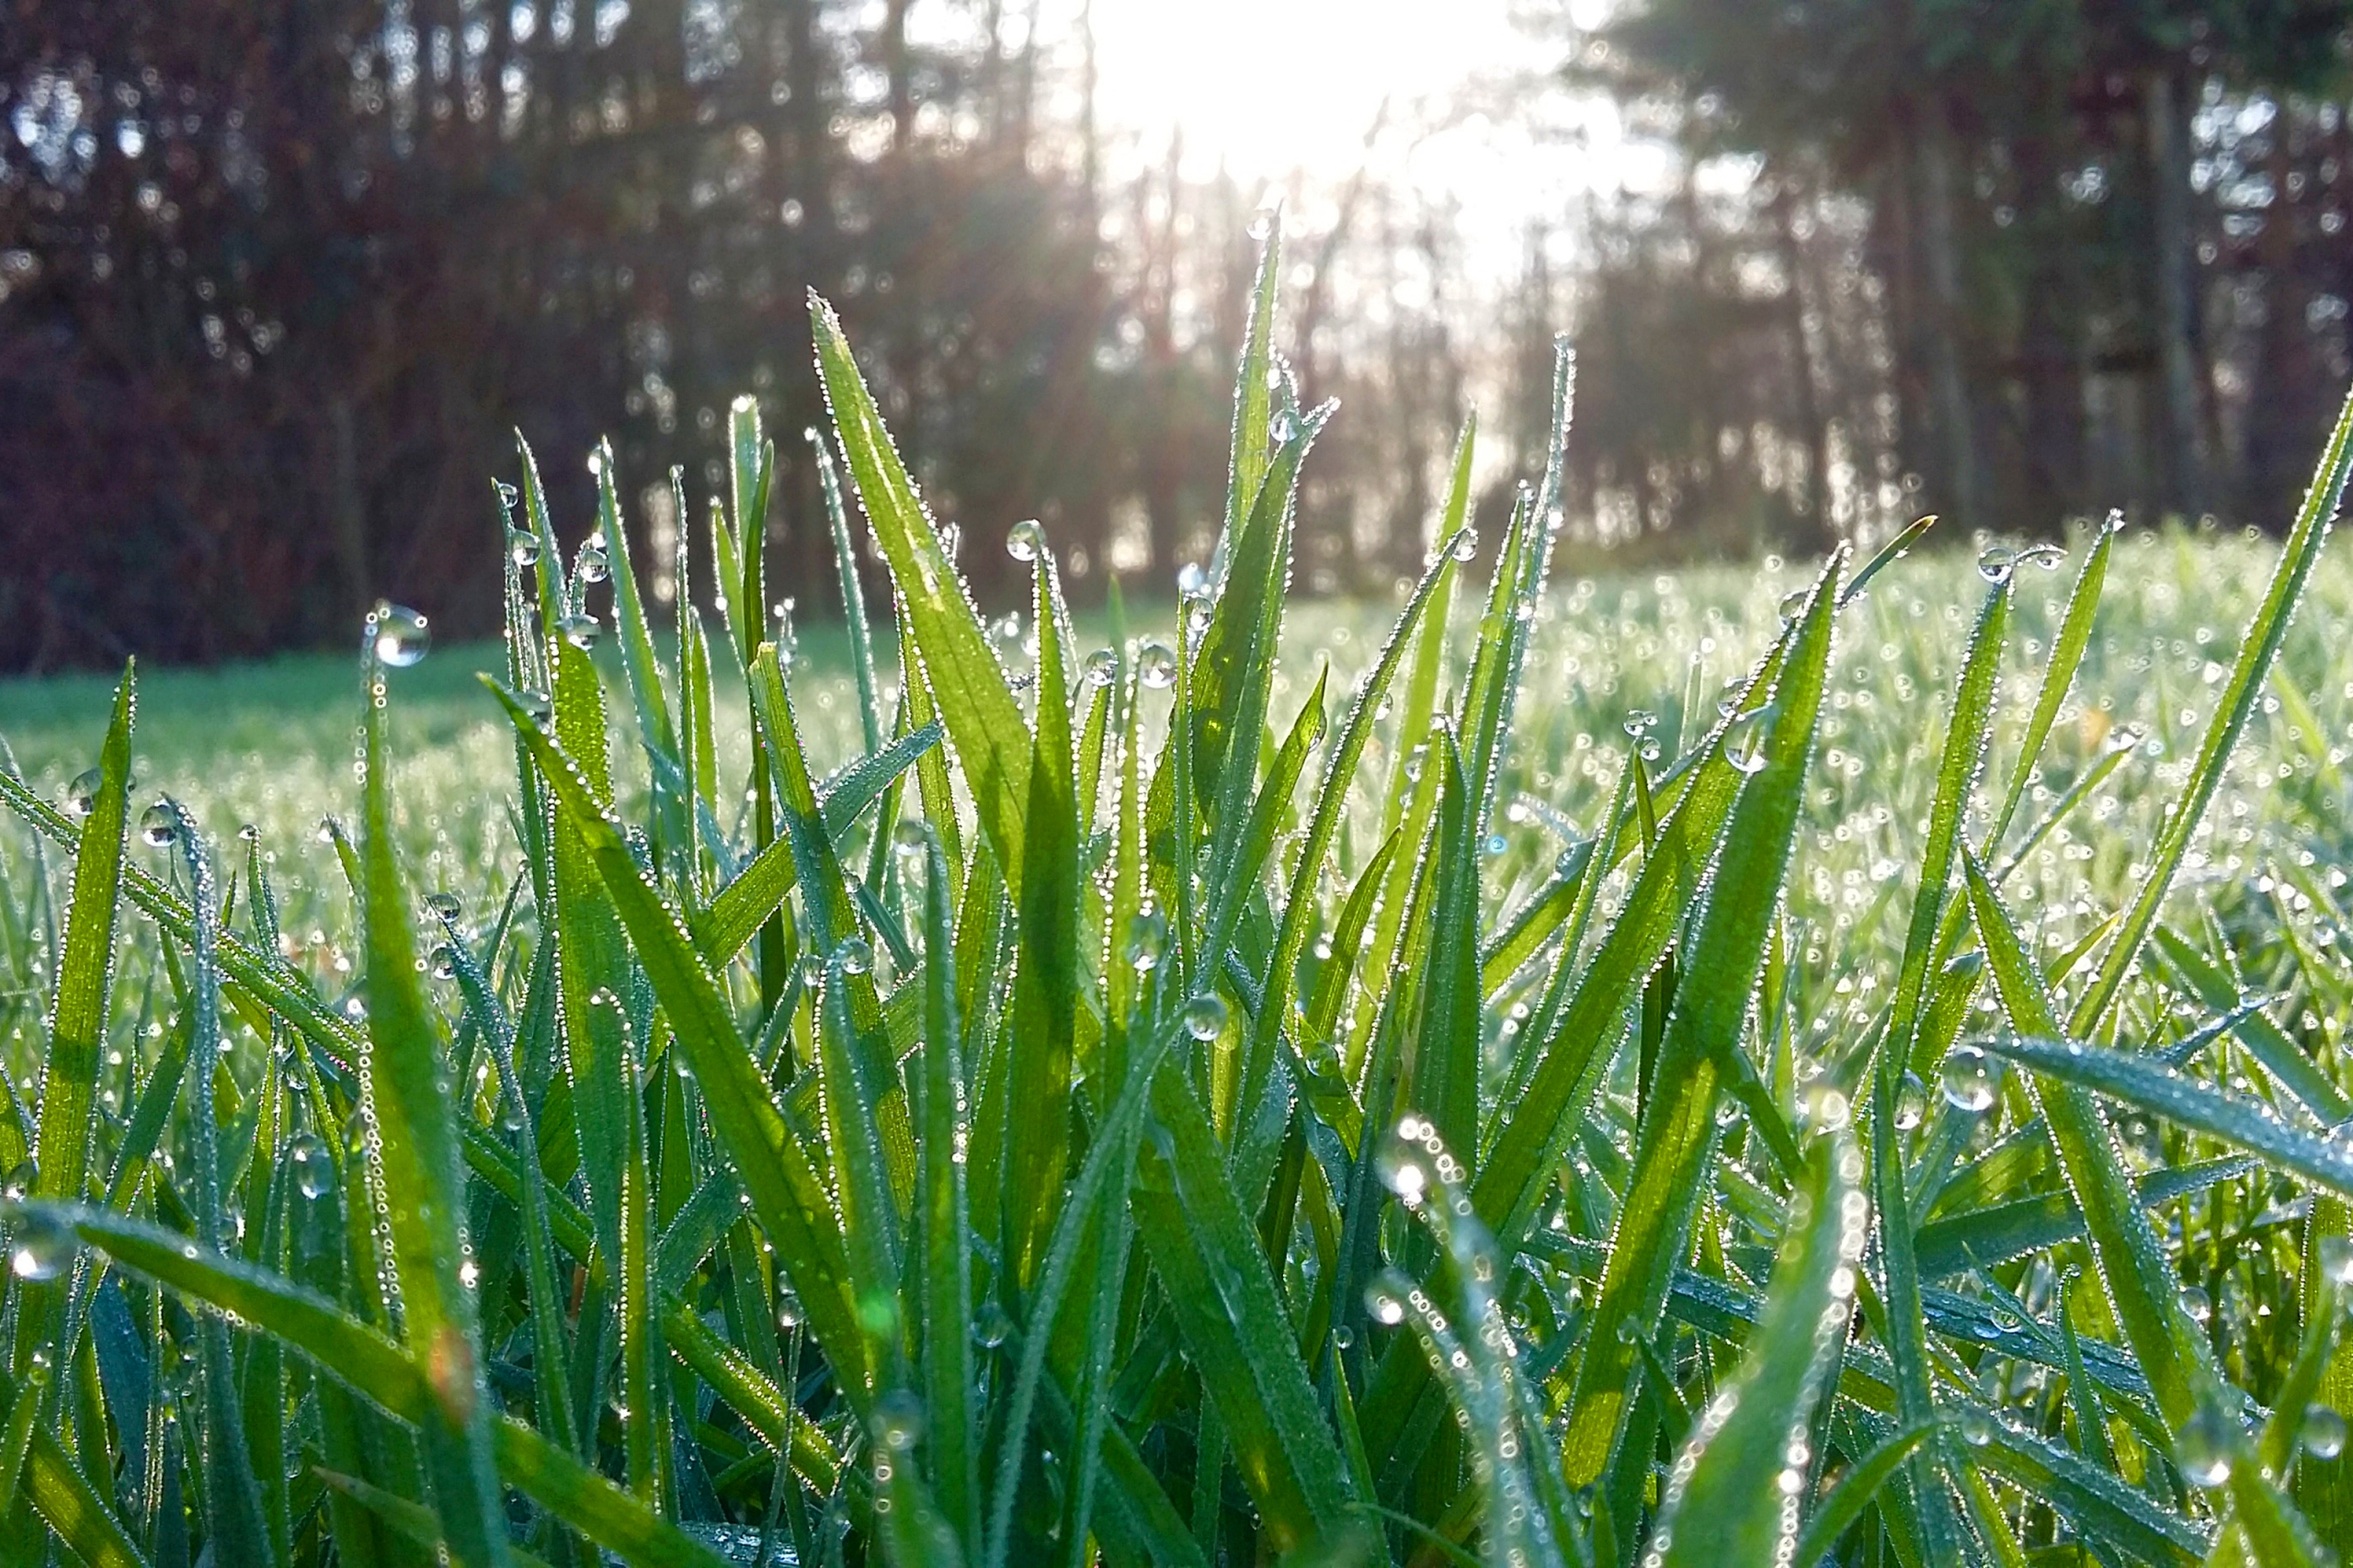 Close up of grass blades covered in dew | Spring Lawn Care